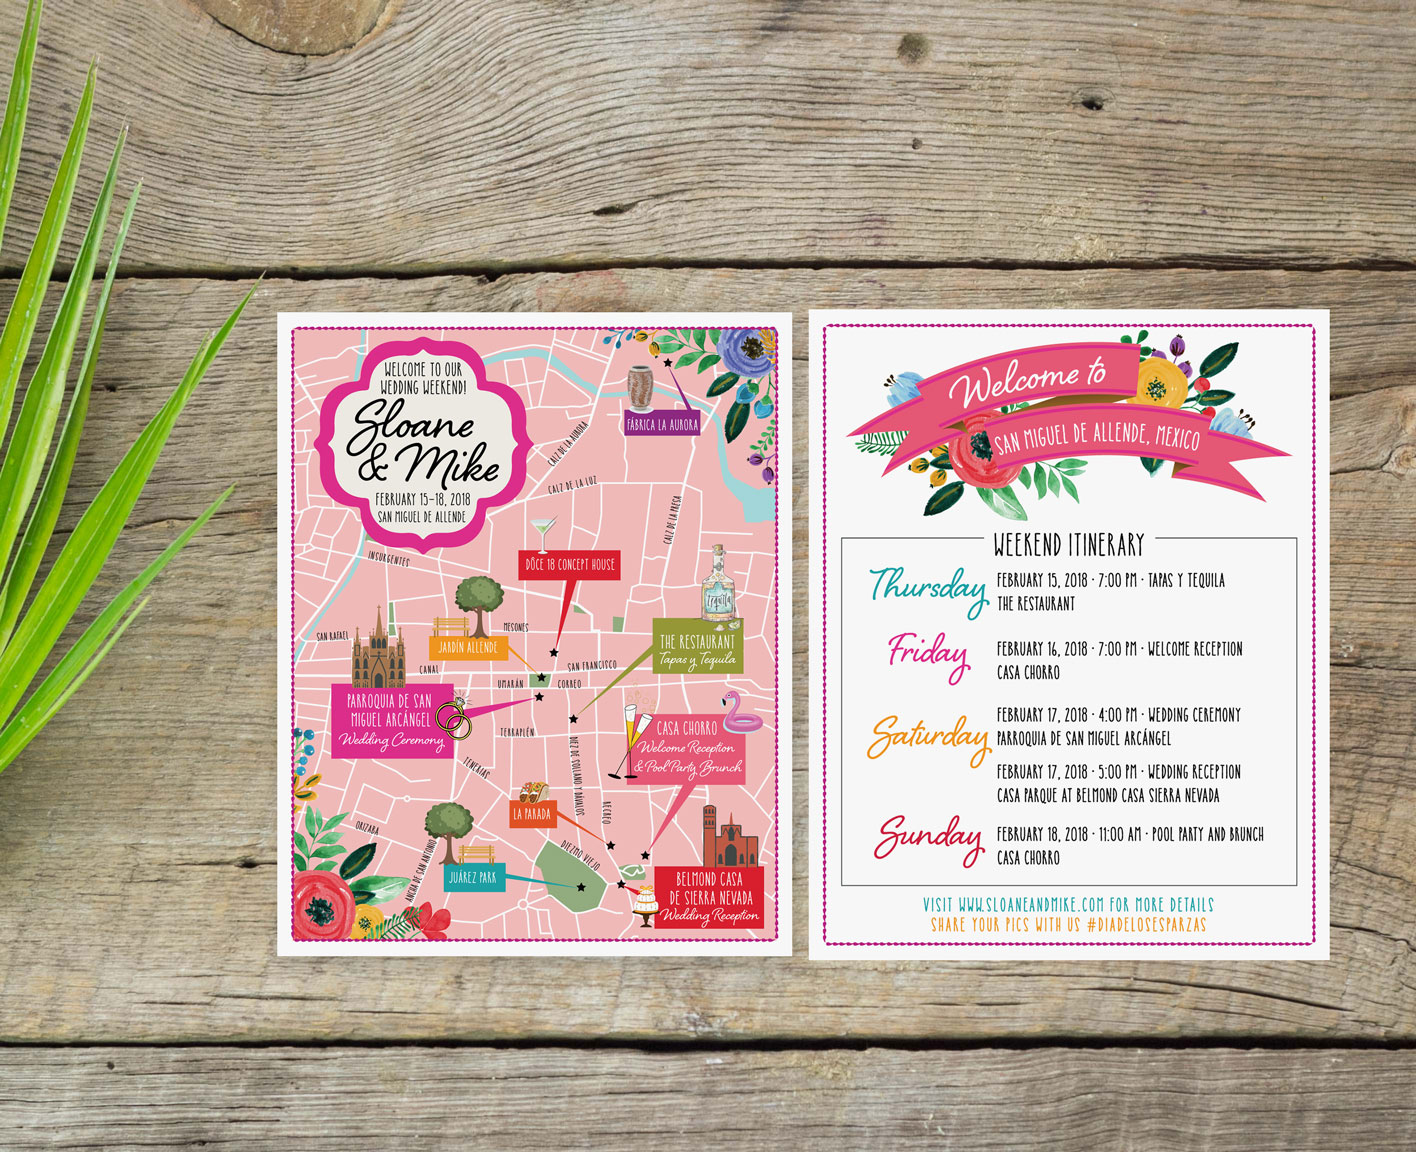 San Miguel de Allende Custom Wedding Map - Feathered Heart Prints